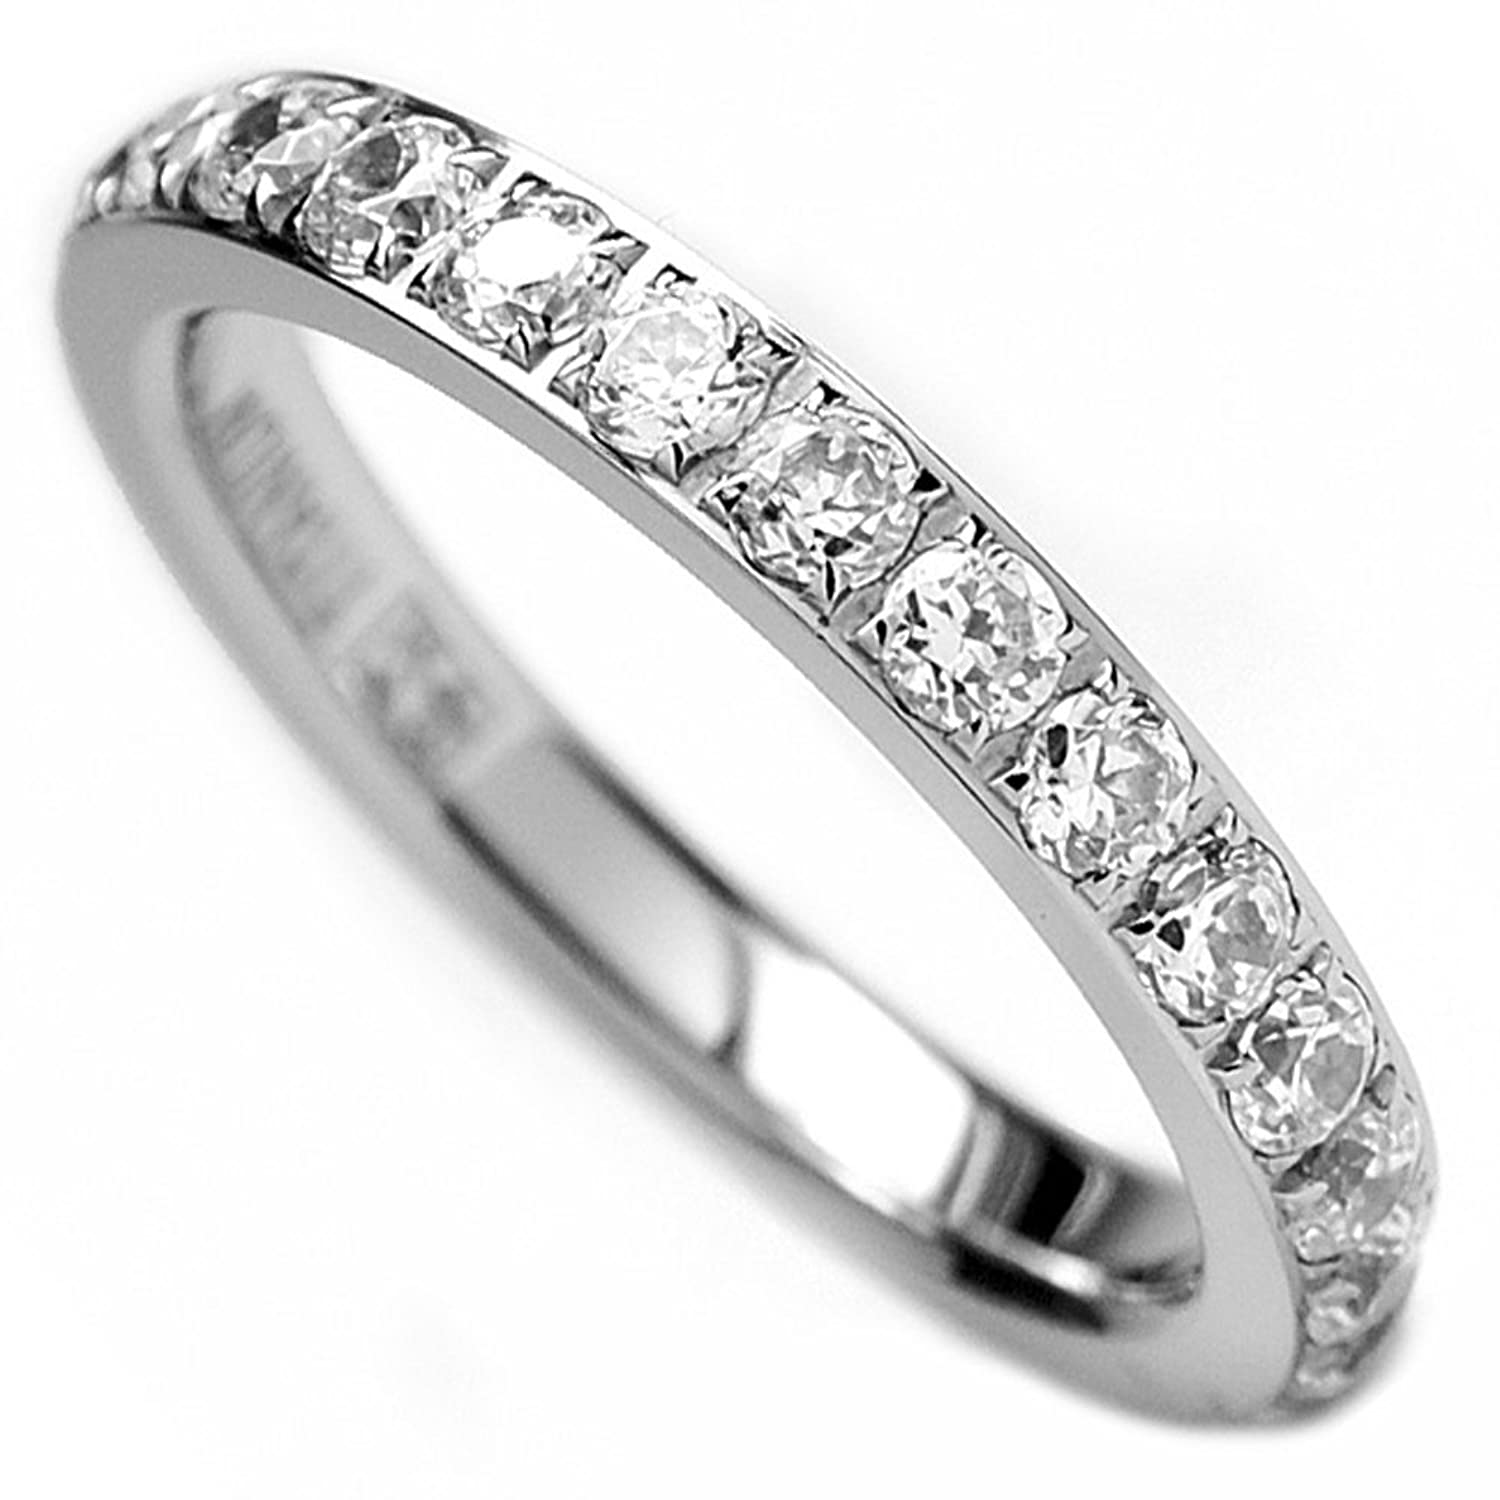 life sapphire false swag band scale eternity and engagement bands upscale subsampling crop the of circle ring product shop diamond